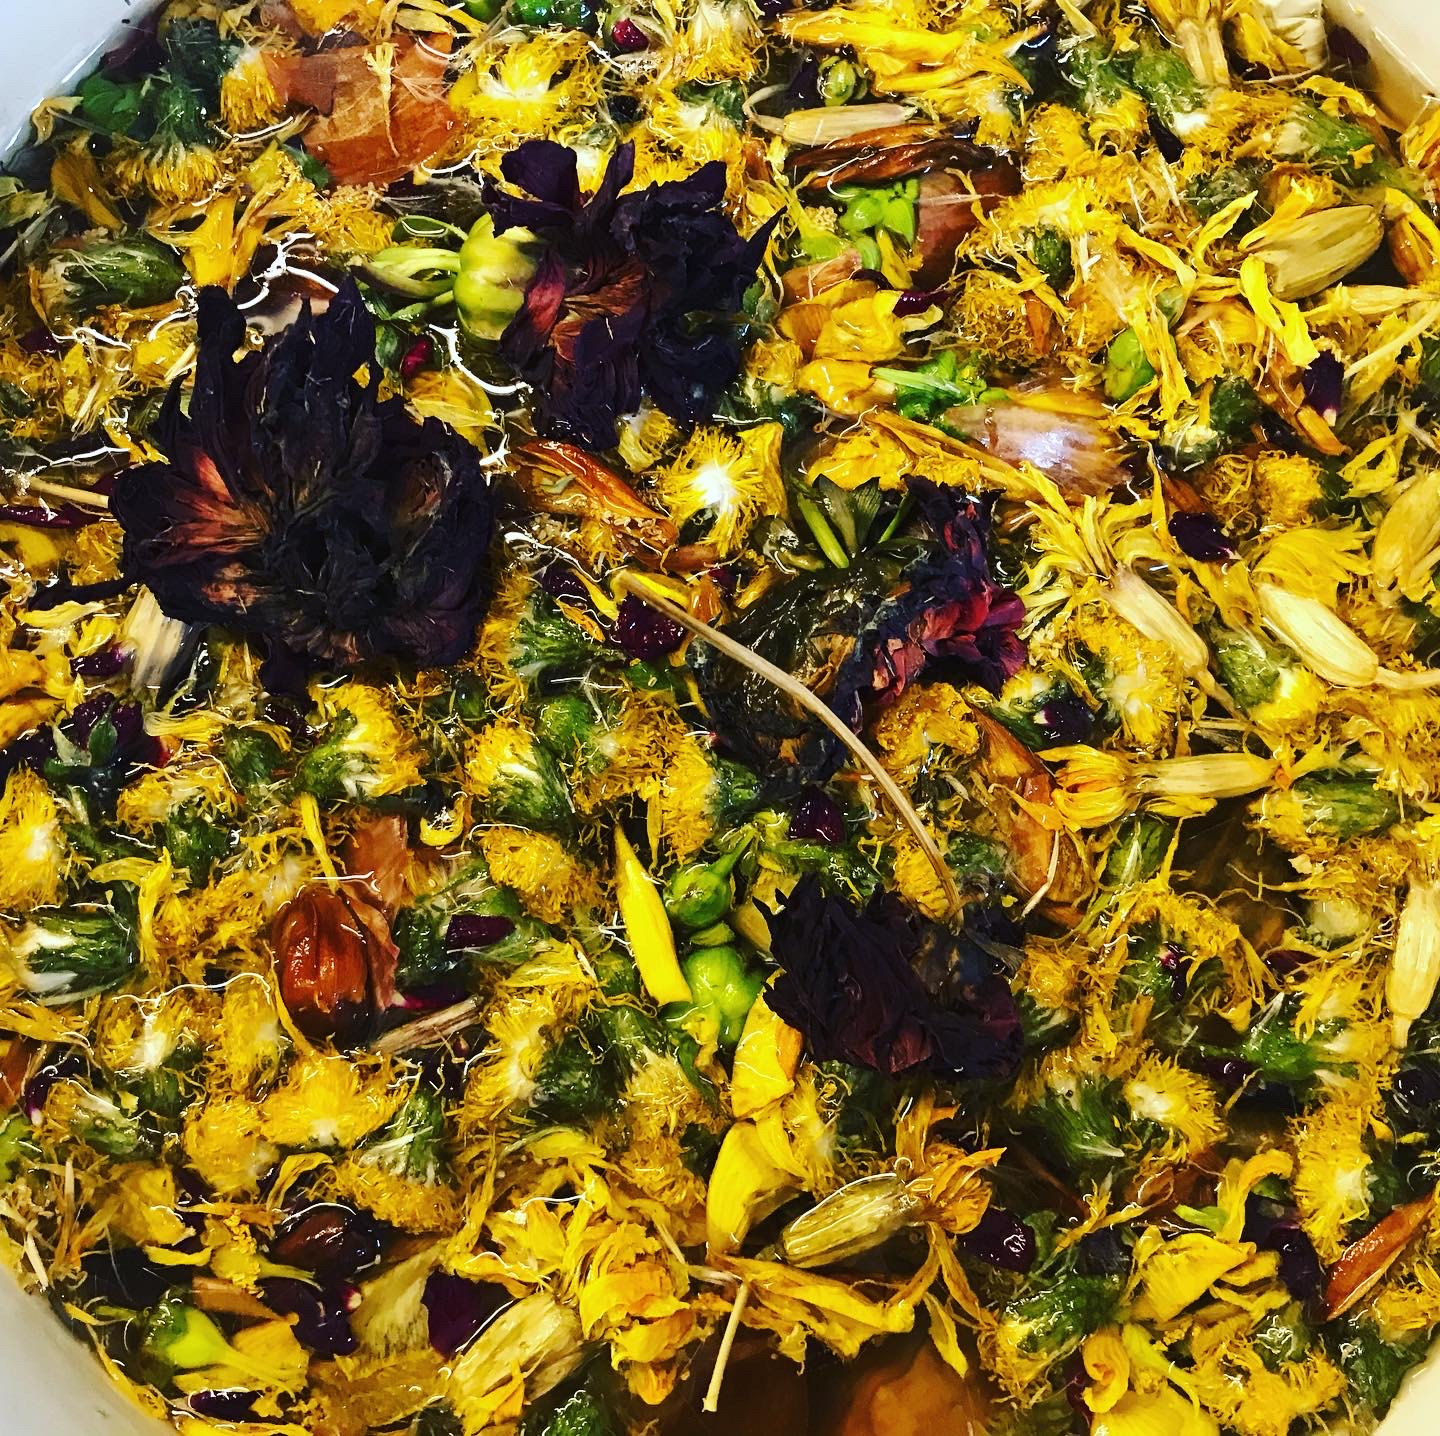 Flowers in a dye pot